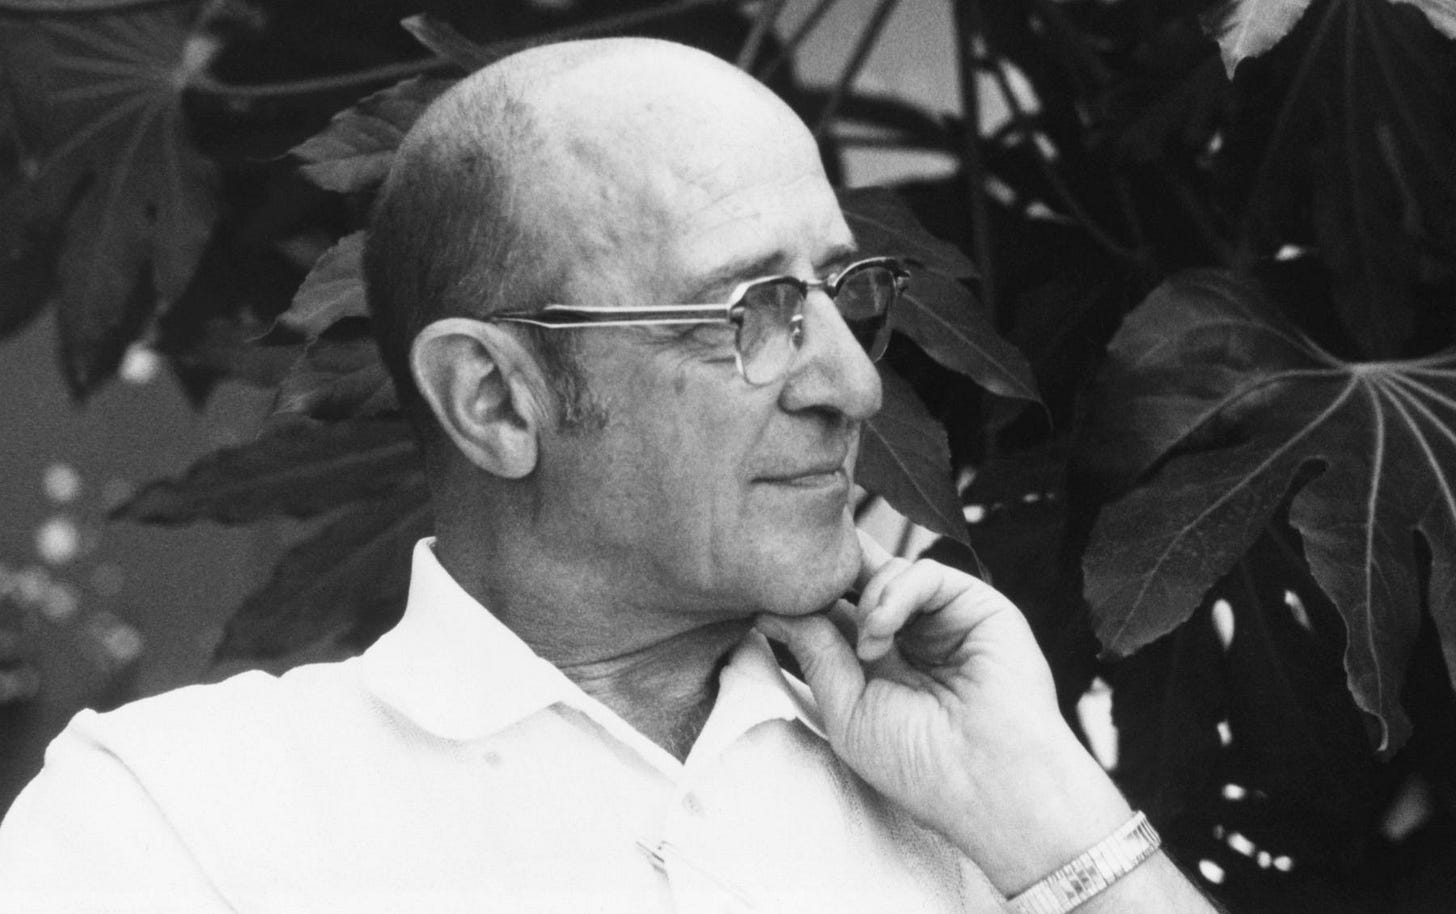 Image of psychotherapist Carl R. Rogers in black and white retrieved from ThoughtCo website